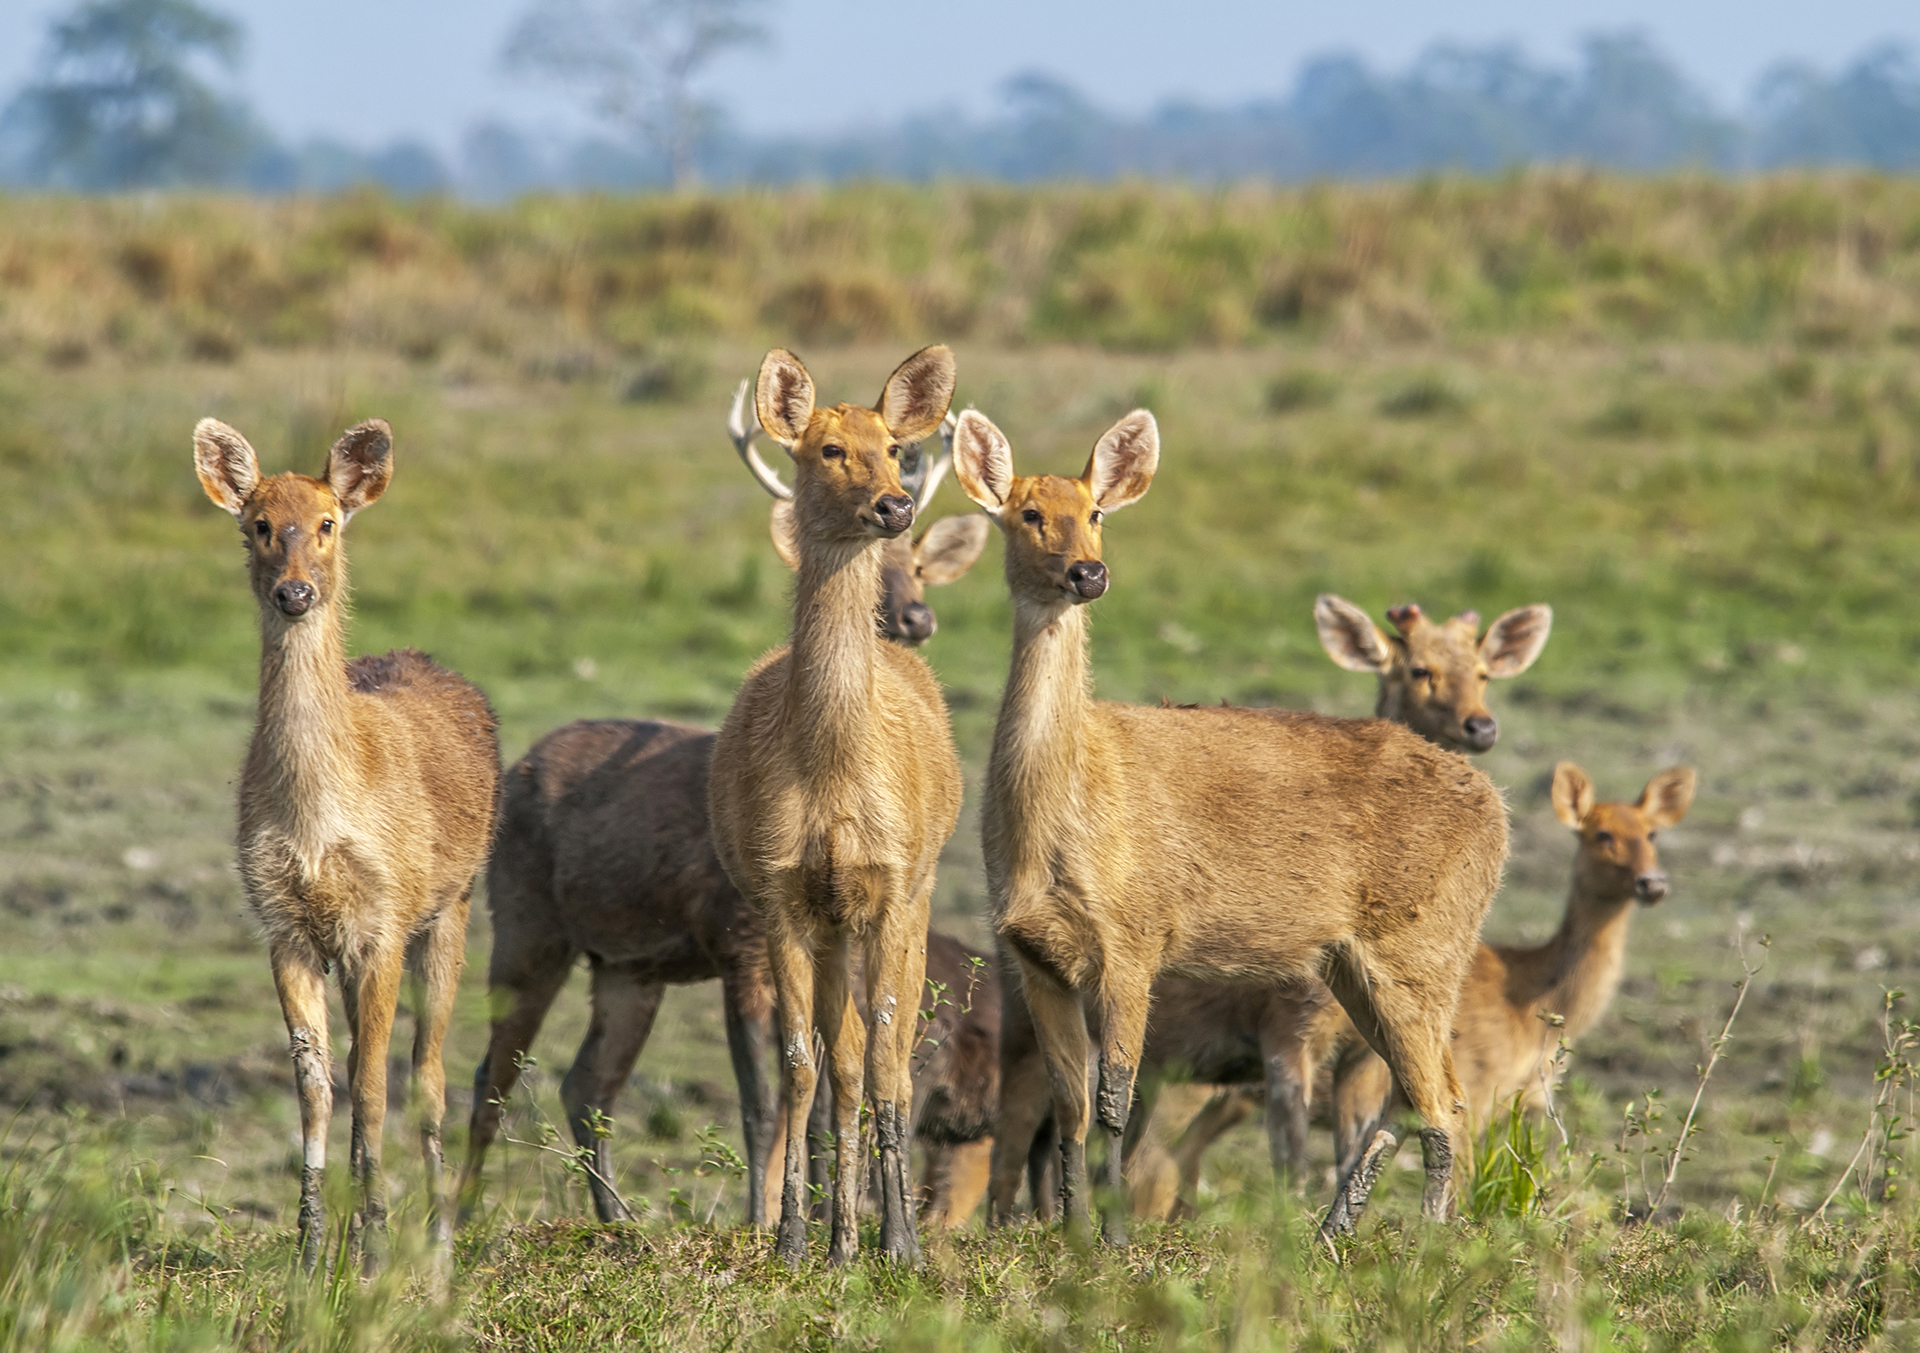 During the fawning season, eastern swamp deer congregate is separate herds — mothers and young ones stay together, while male adults move around in small groups of their own. Photo: Udayan Borthakur